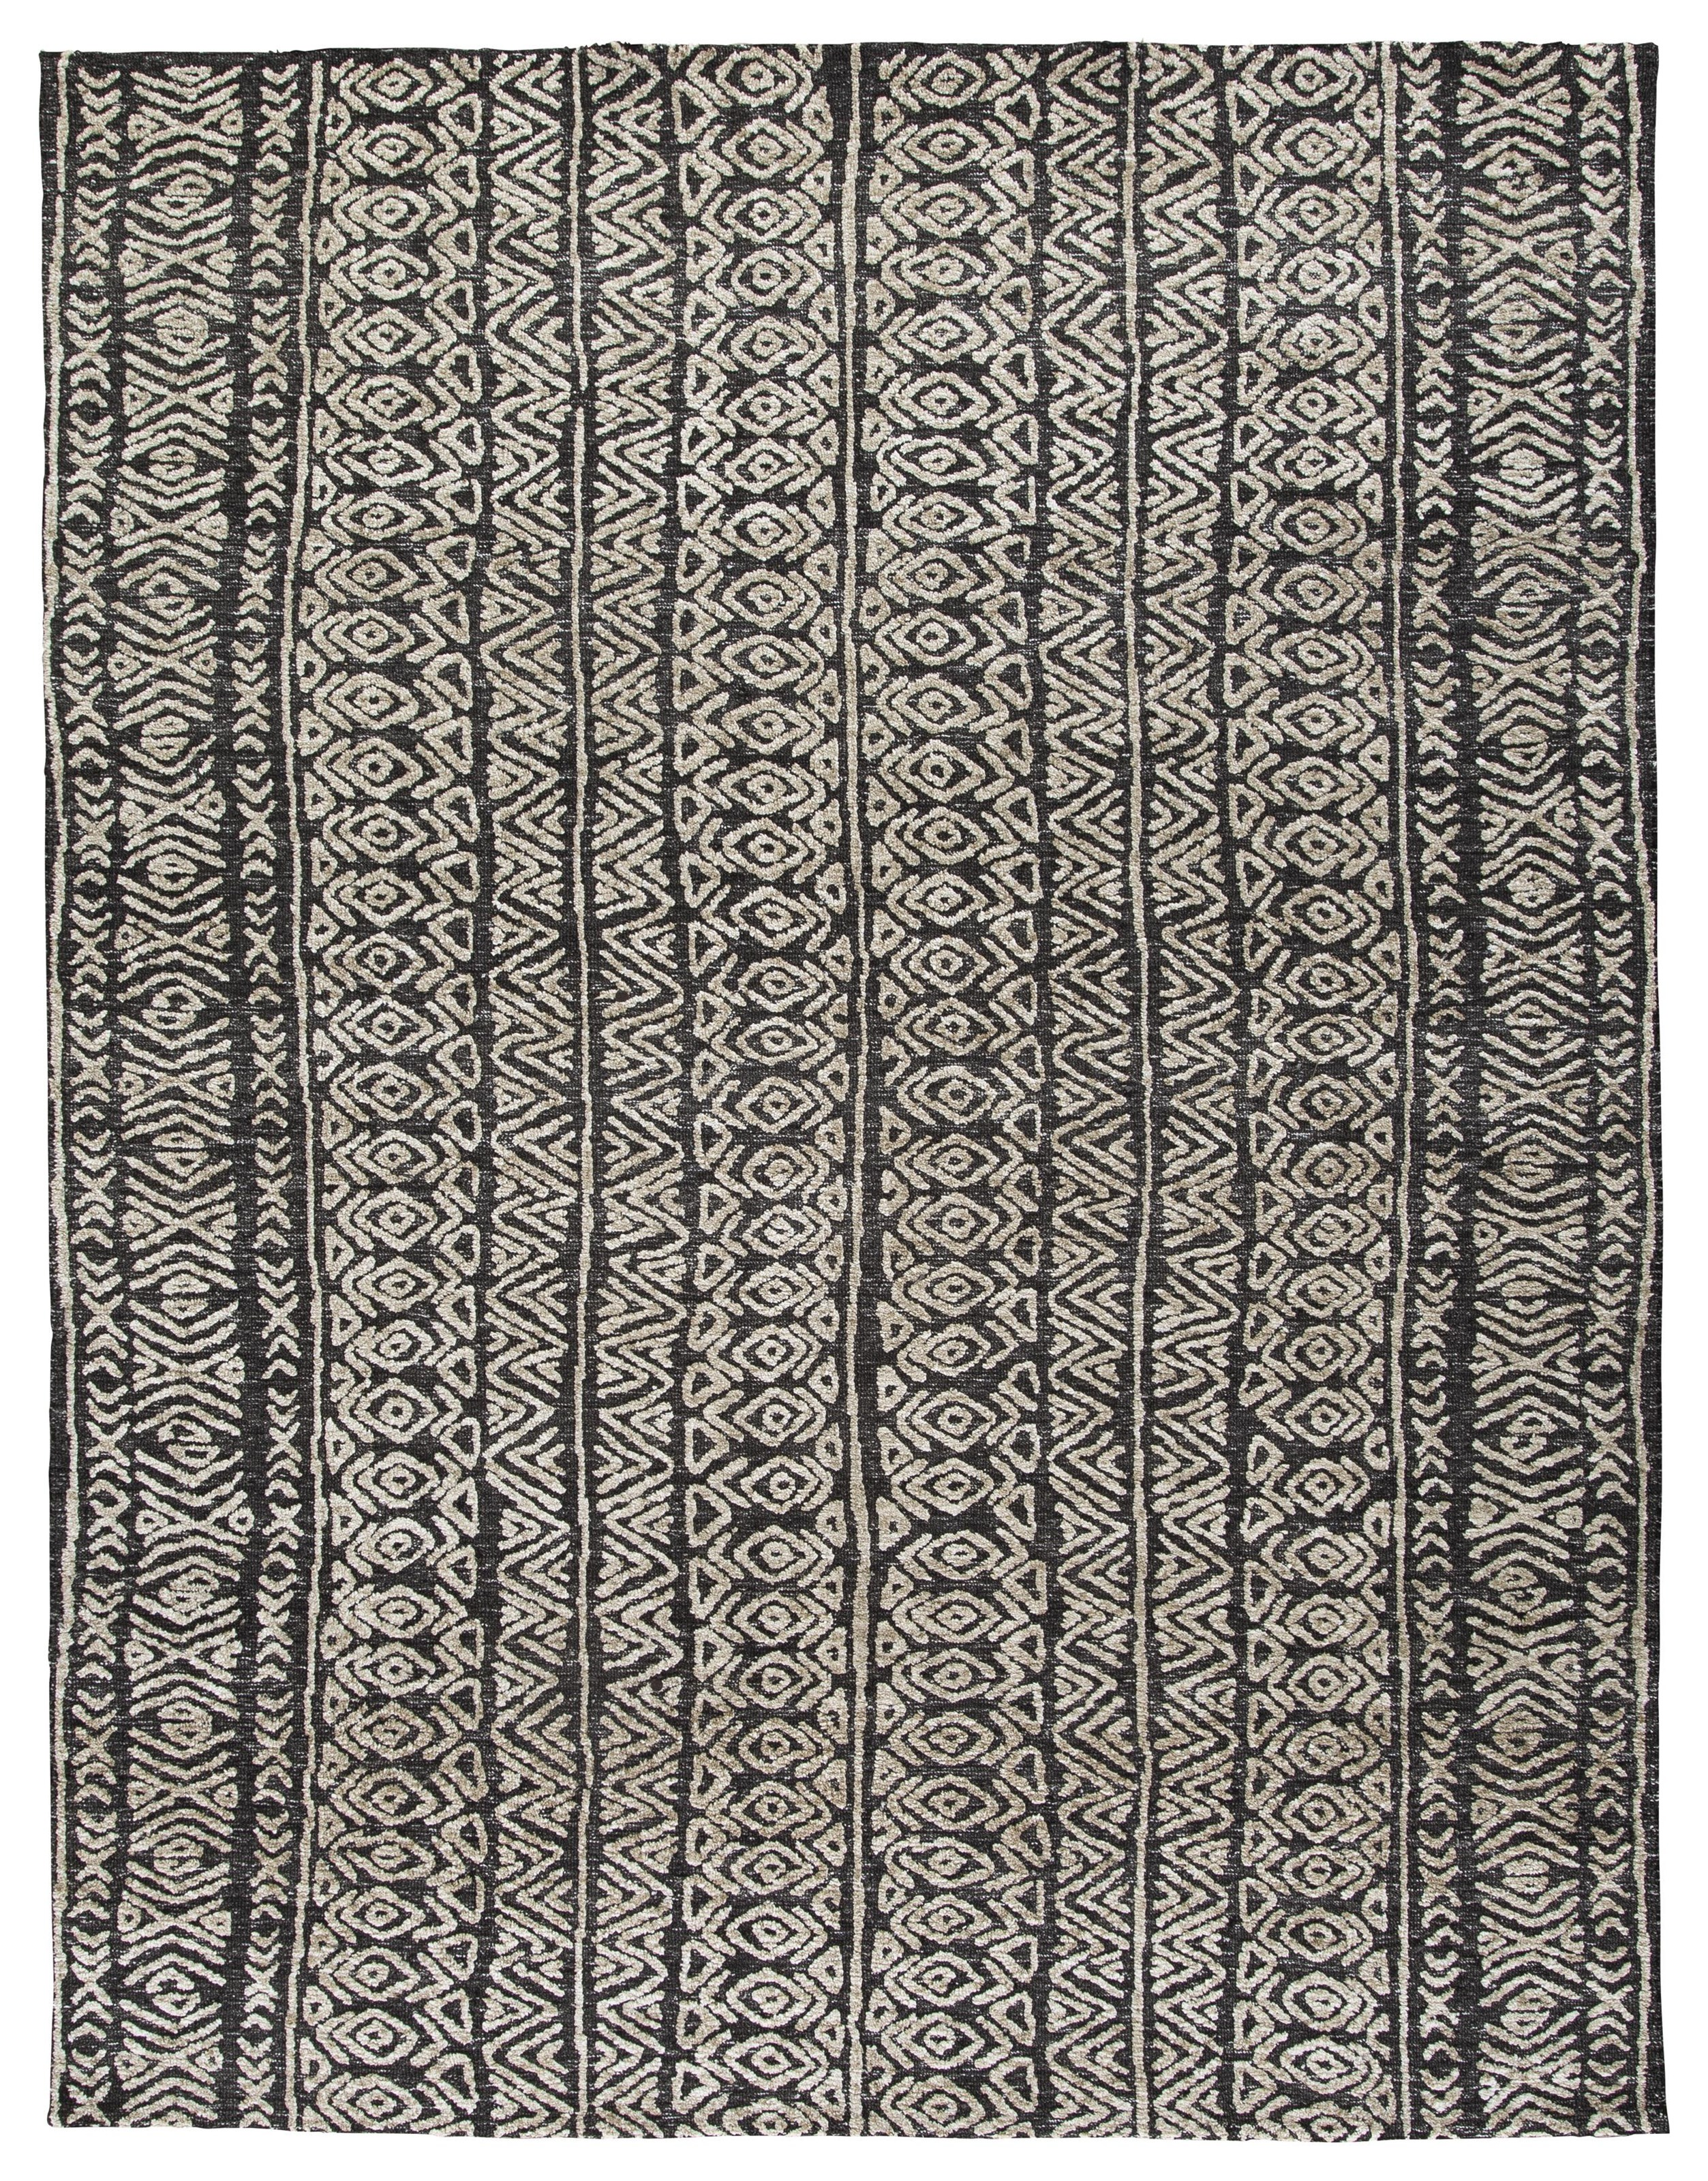 Holdner 5x7 Area Rug by Signature Design by Ashley at Sam Levitz Furniture